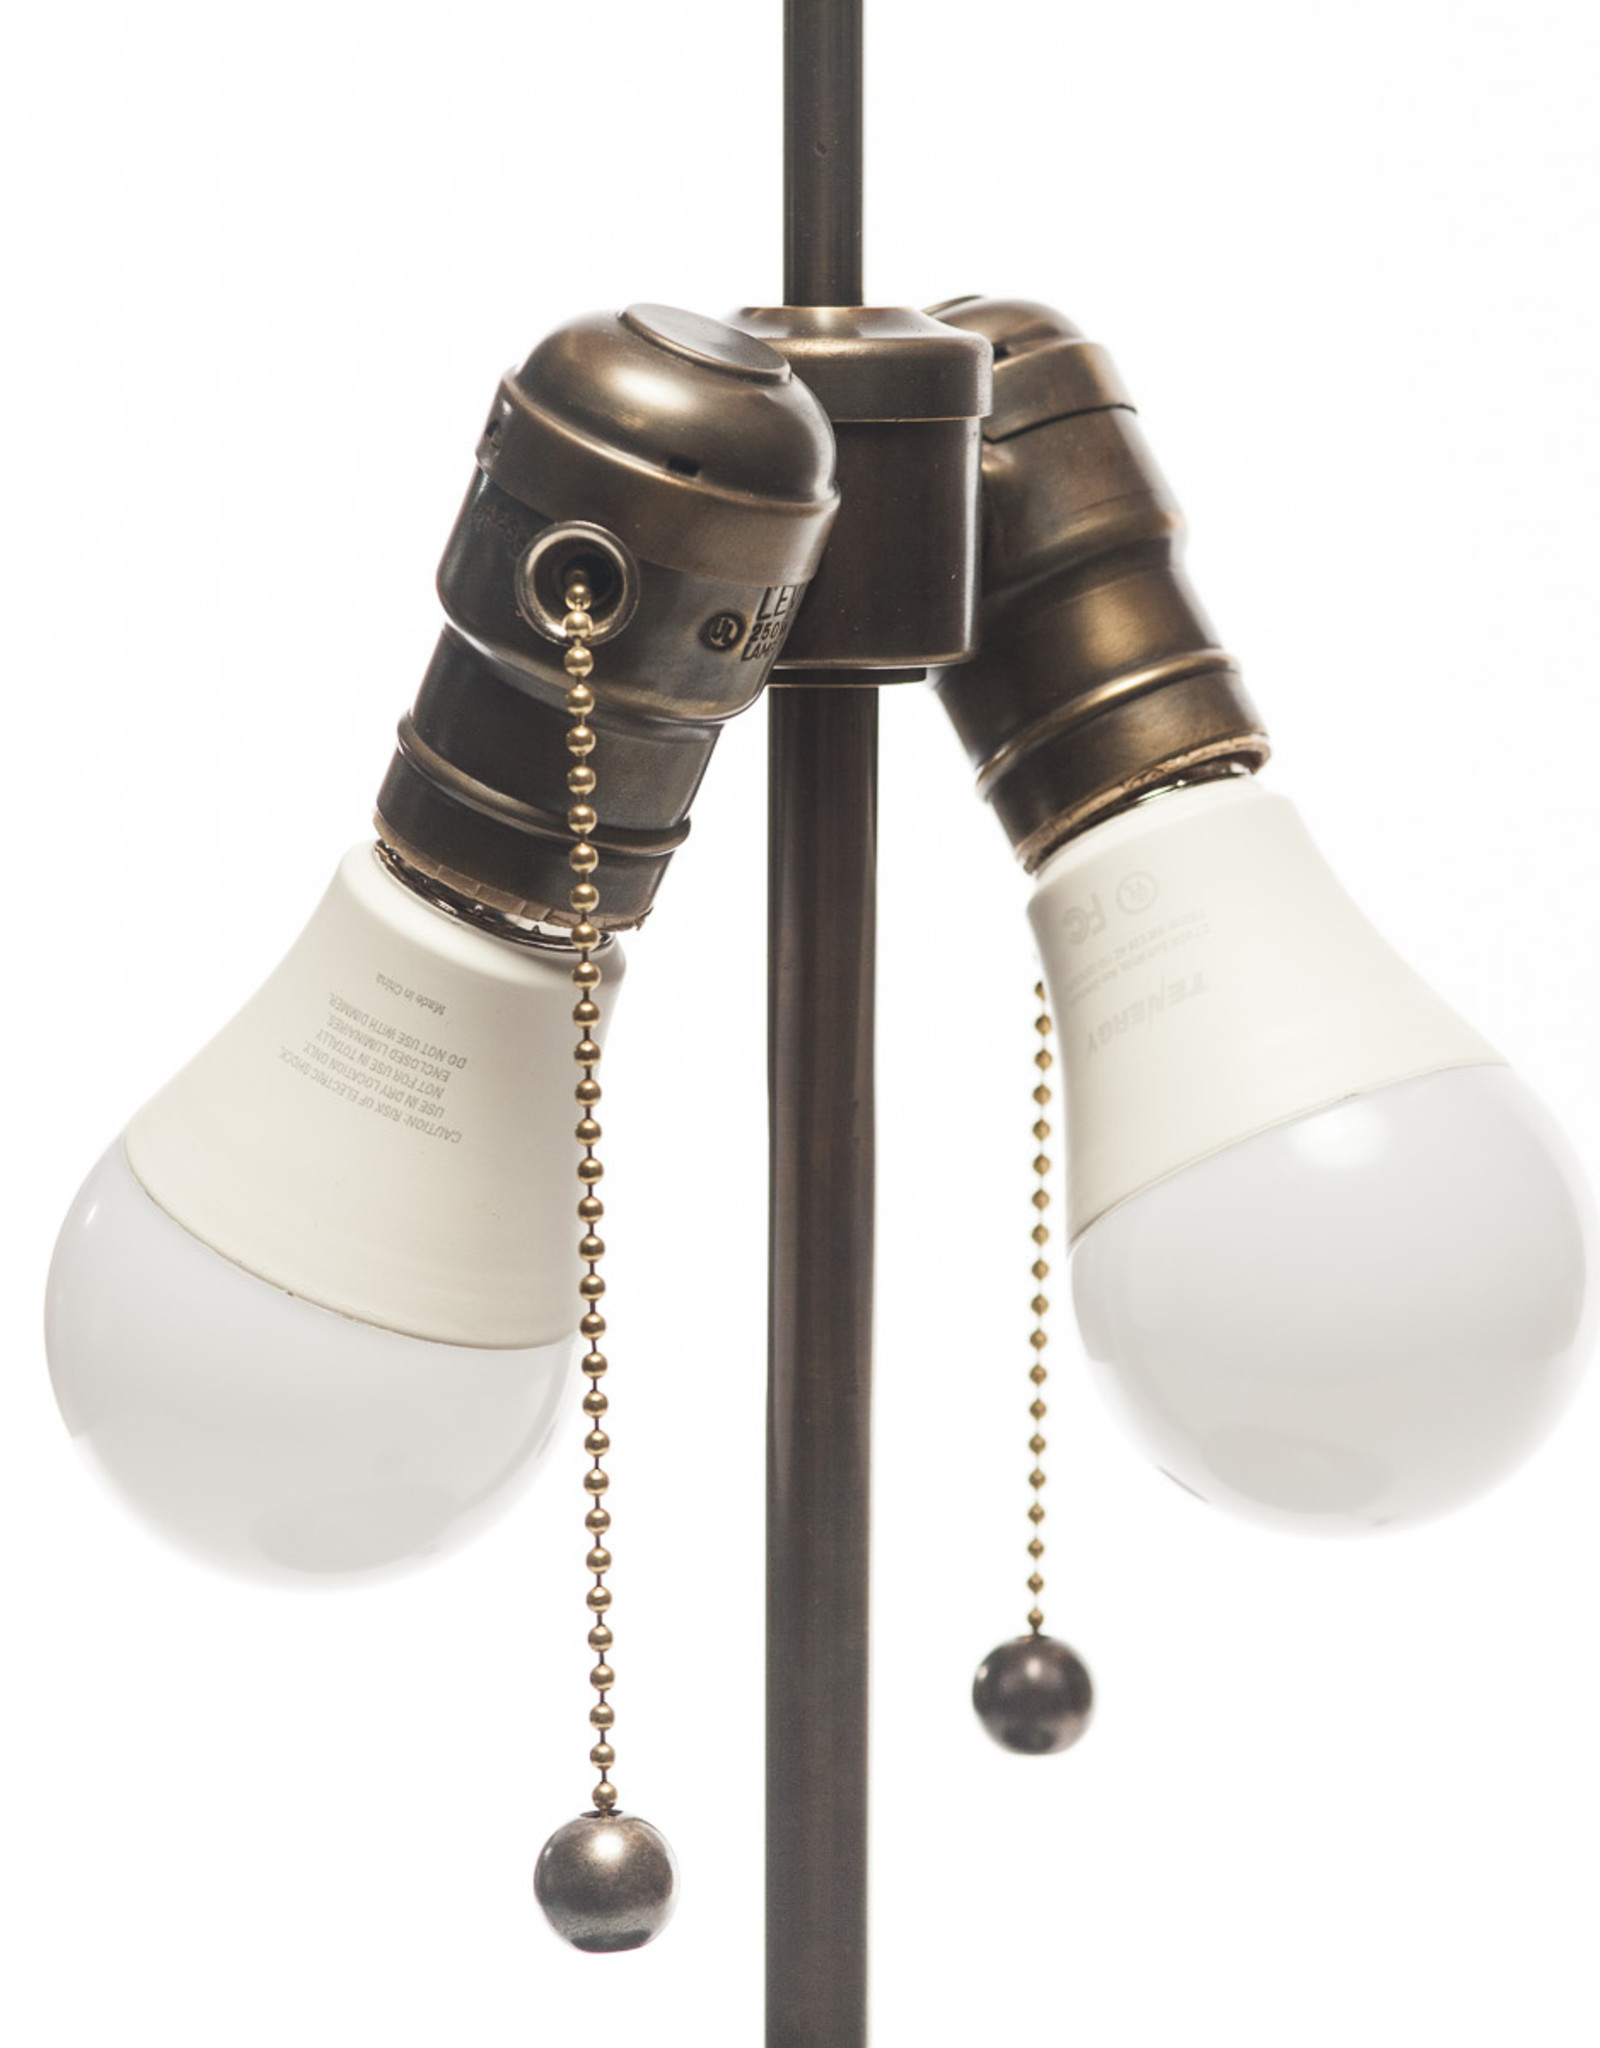 Lawrence & Scott Lillian Table Lamp in Oyster Gray with Rosewood Cap